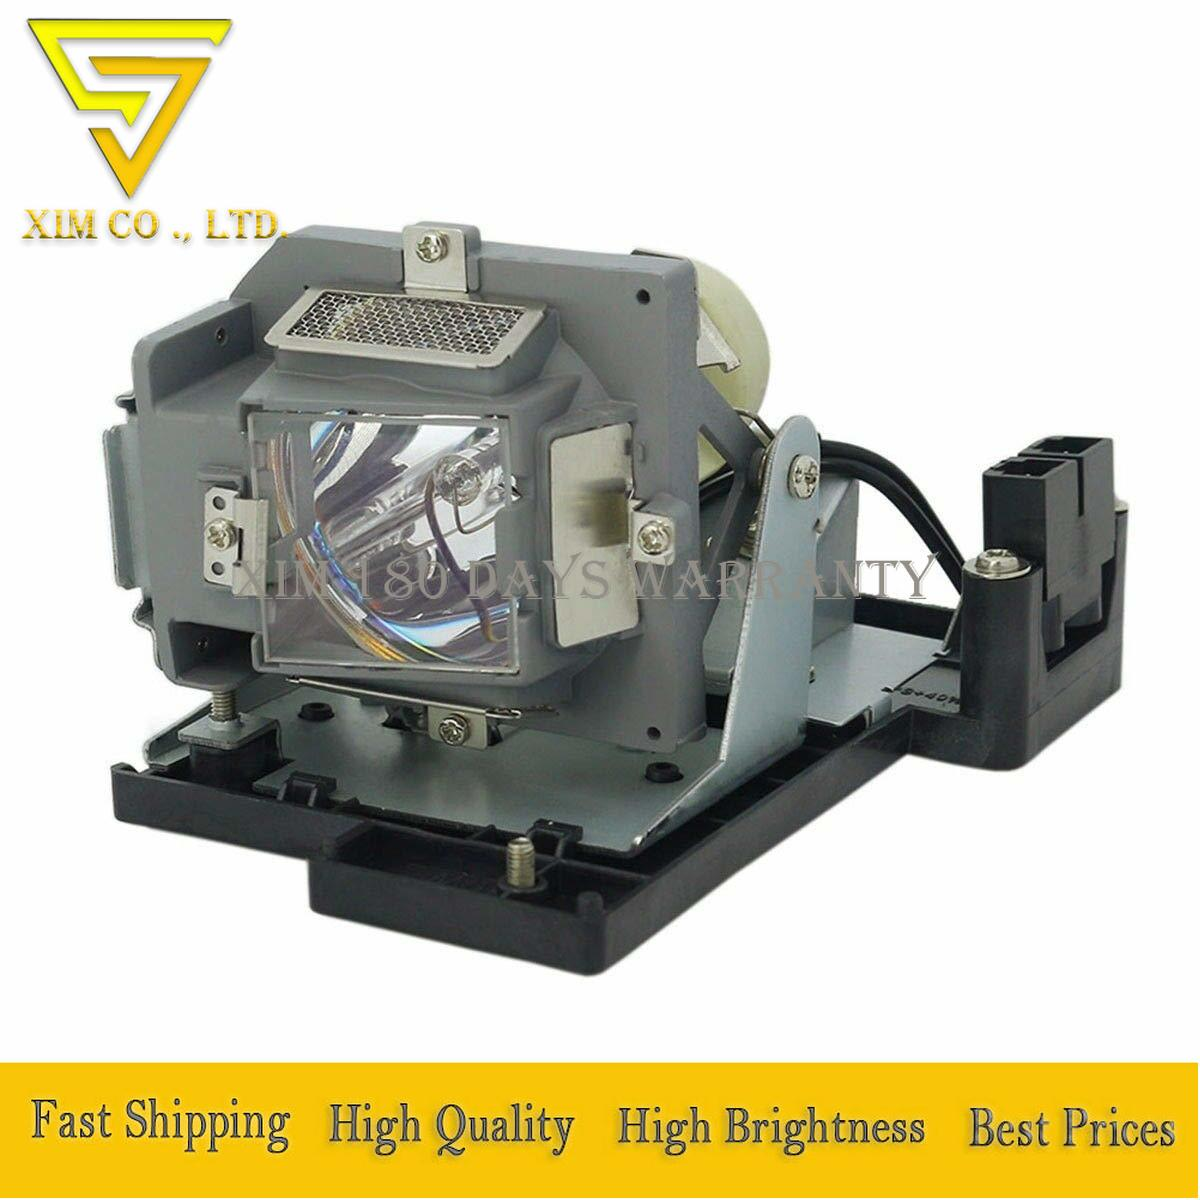 5J J0705 001 high quality Projector Lamp Bulb with housing Replacement for BENQ HP3325 MP670 W600